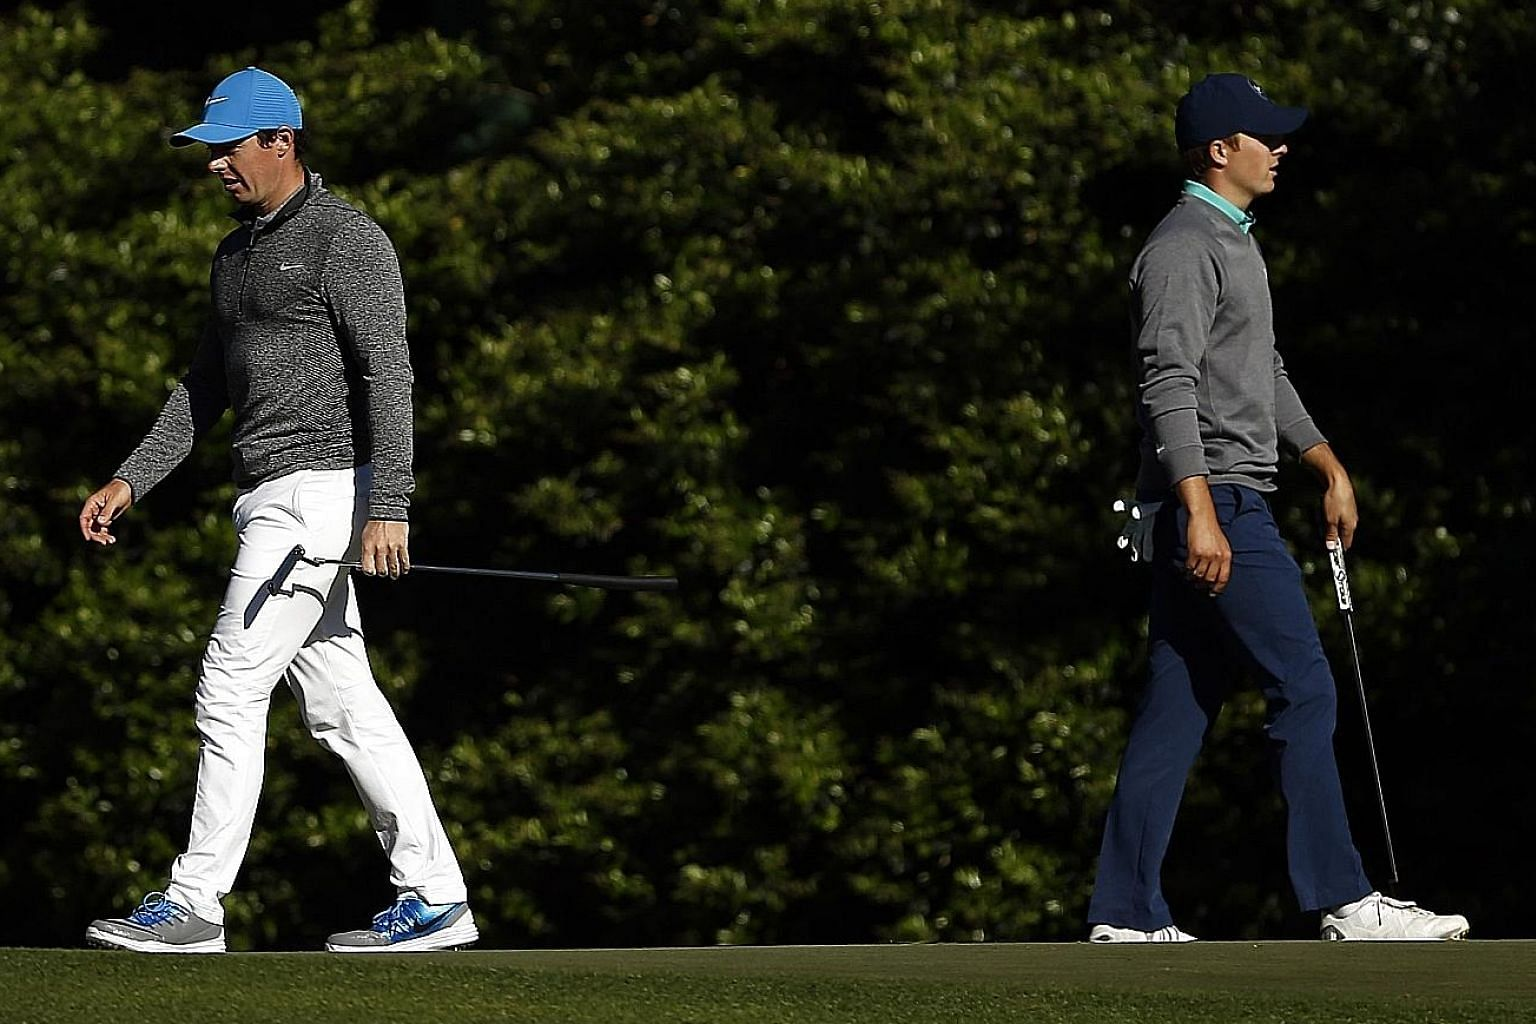 Northern Irishman Rory McIlroy (left) and American Jordan Spieth walk the 11th green during the third round of the Masters at Augusta National Golf Club.